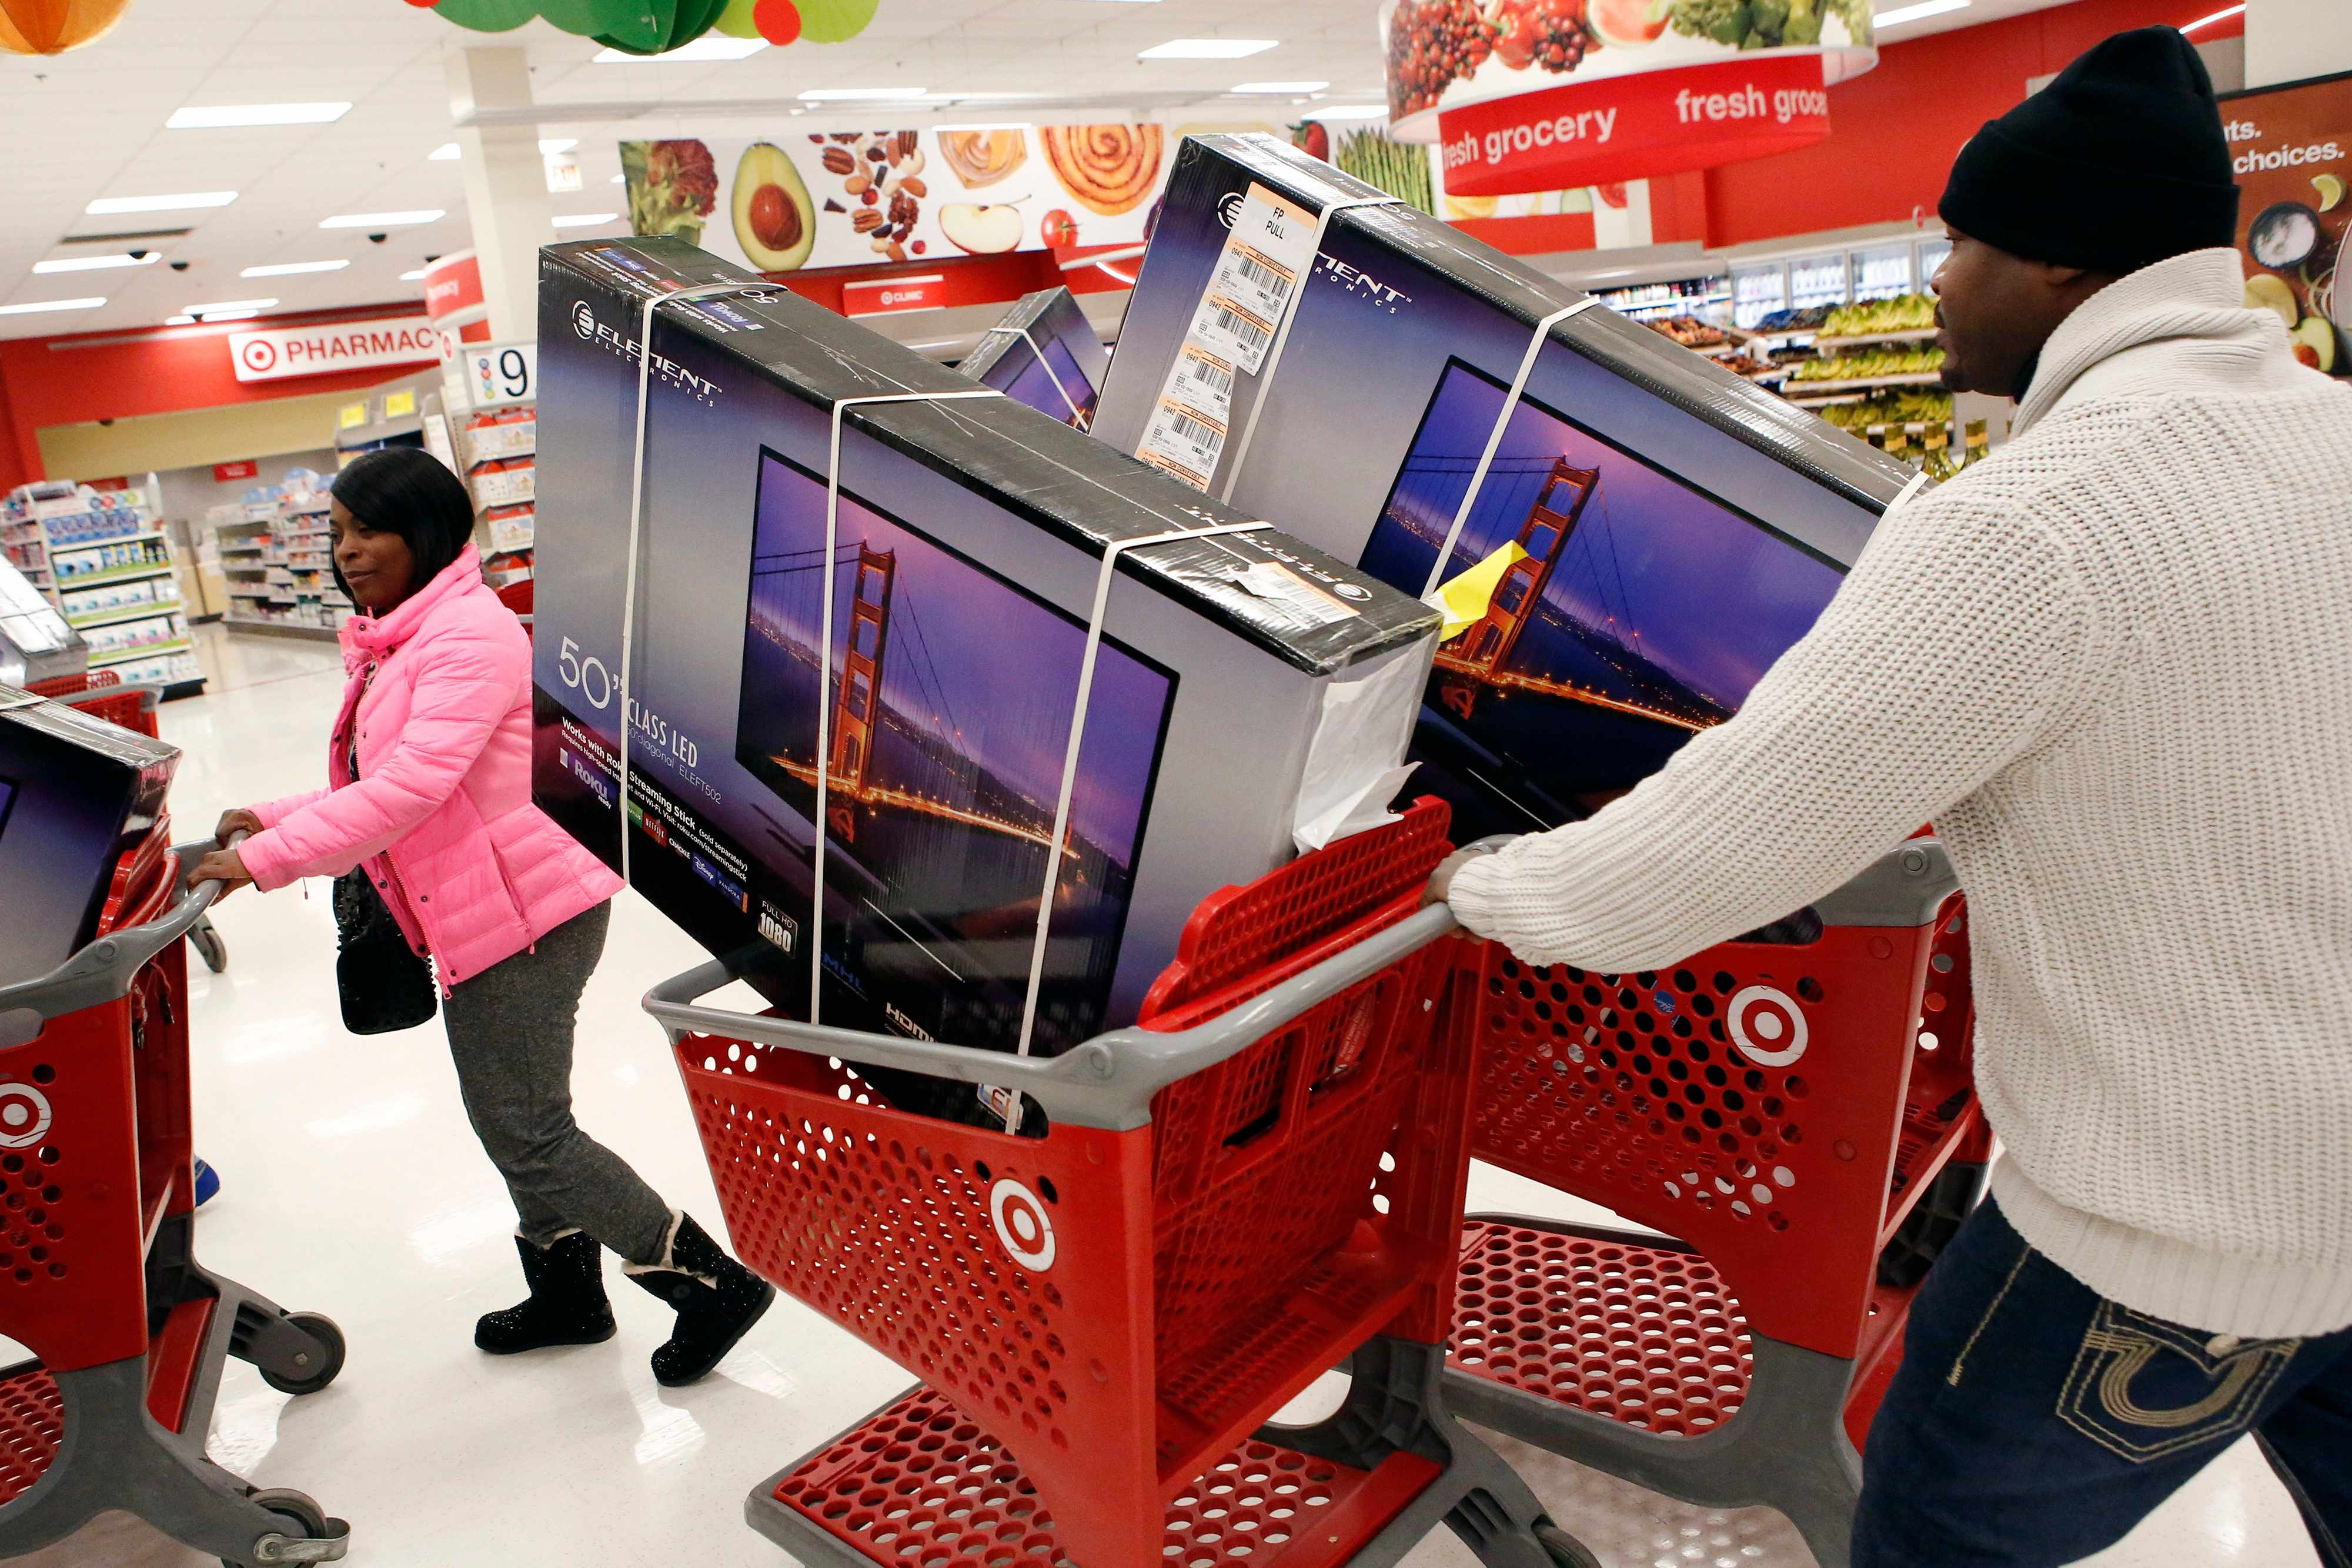 Customers pick up shopping carts containing Element Electronics 50-inch light-emitting diode (LED) high definition televisions at a Target Corp. store opening ahead of Black Friday in Chicago, Illinois, U.S., on Thursday, Nov. 28, 2013. U.S. retailers will kick off holiday shopping earlier than ever this year as stores prepare to sell some discounted items at a loss in a battle for consumers. Photographer: Patrick T. Fallon/Bloomberg via Getty Images  TL, Getty